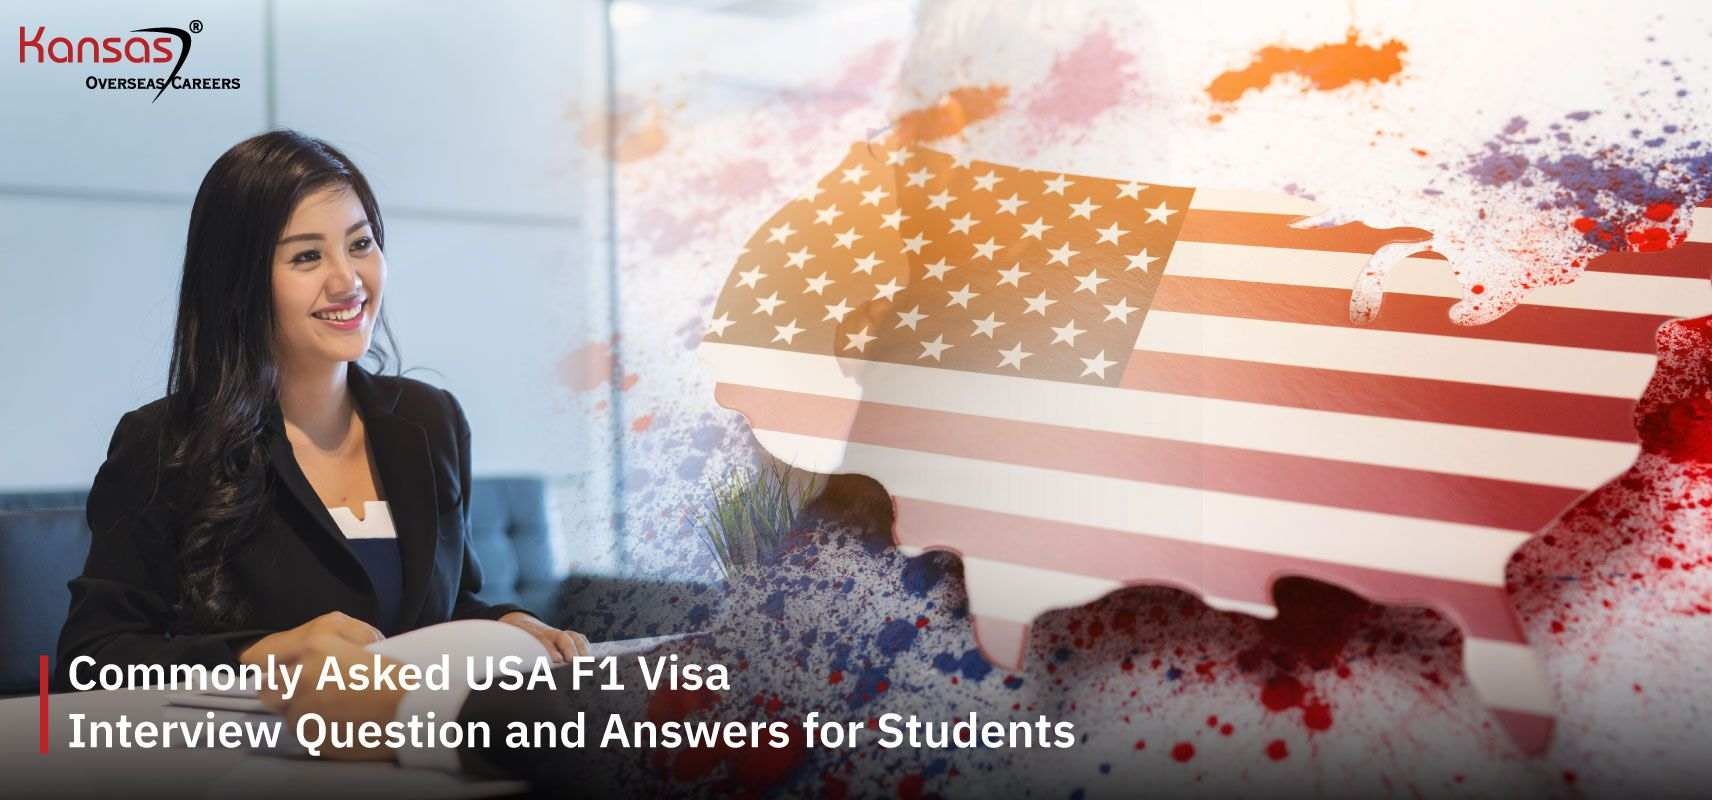 Commonly-Asked-USA-F1-Visa-Interview-Questions-and-Answers-for-Students